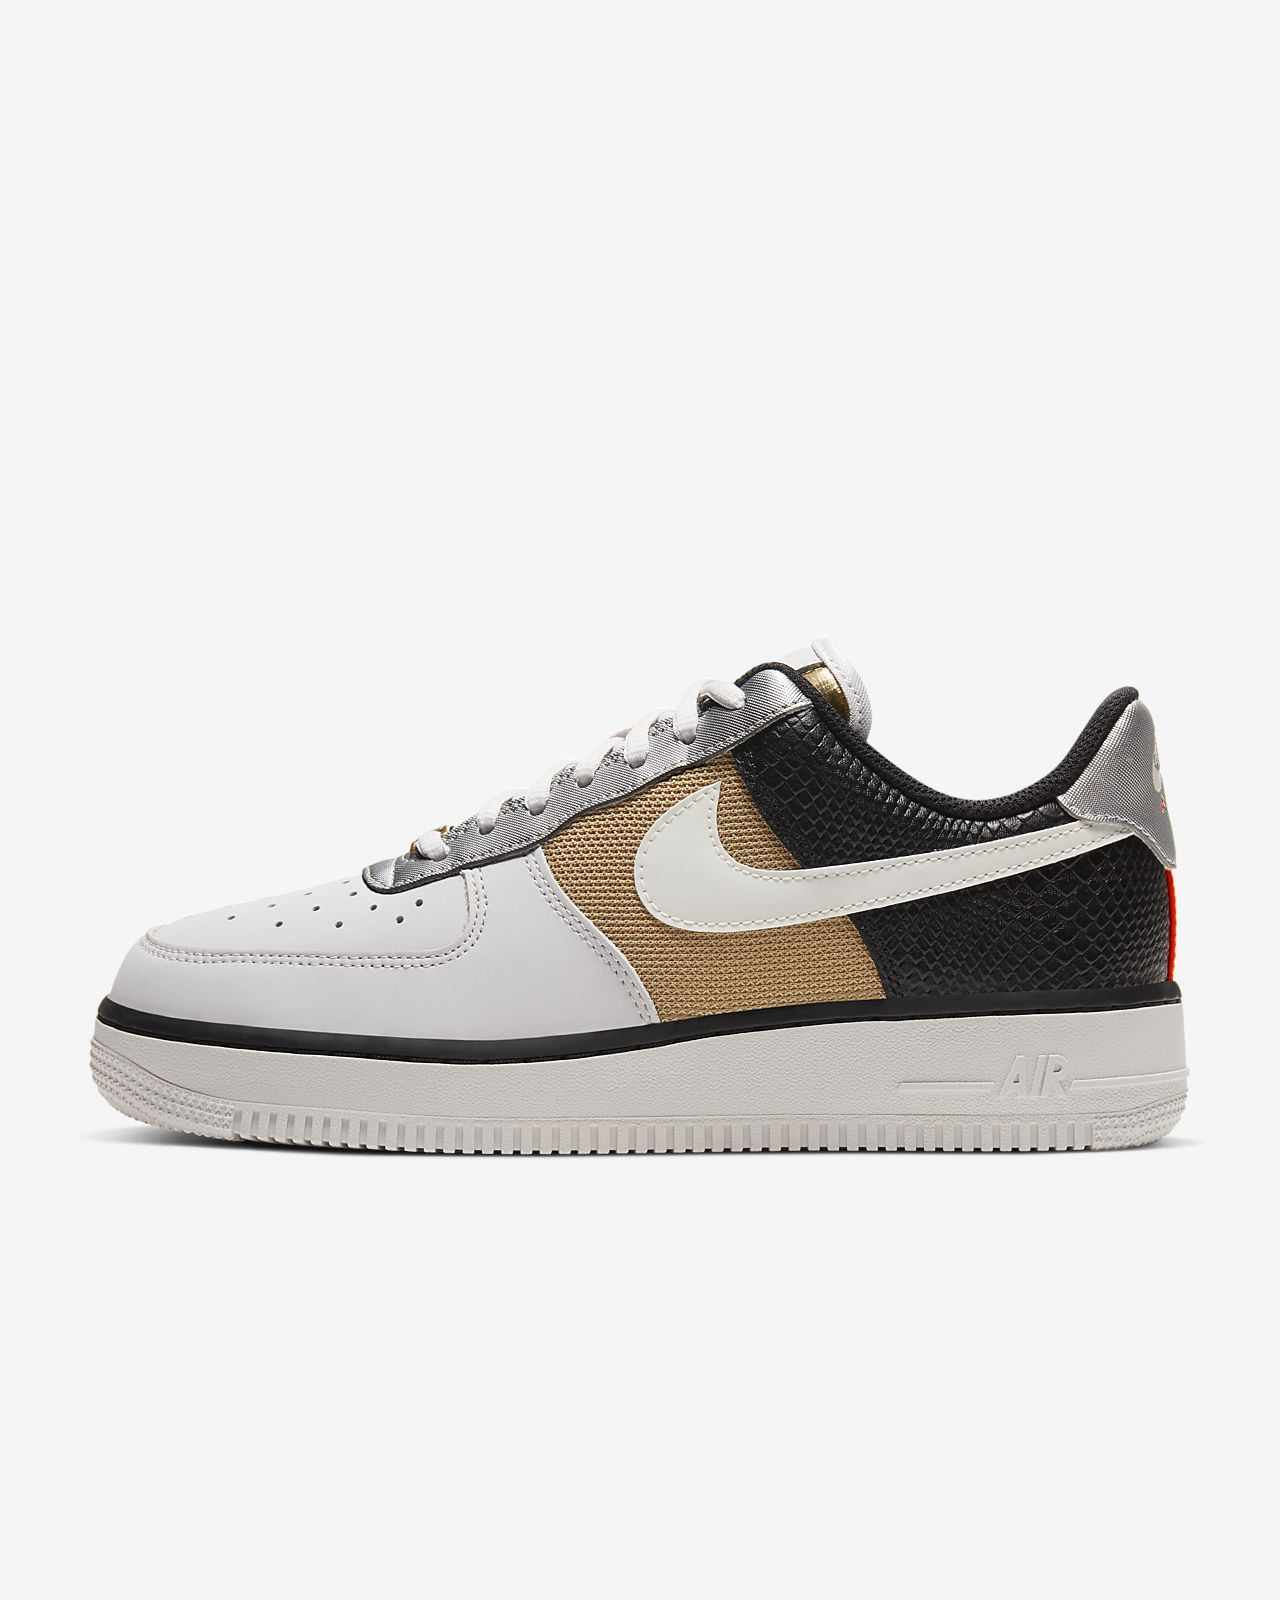 Nike Air Force 1 ???7 sko til dame